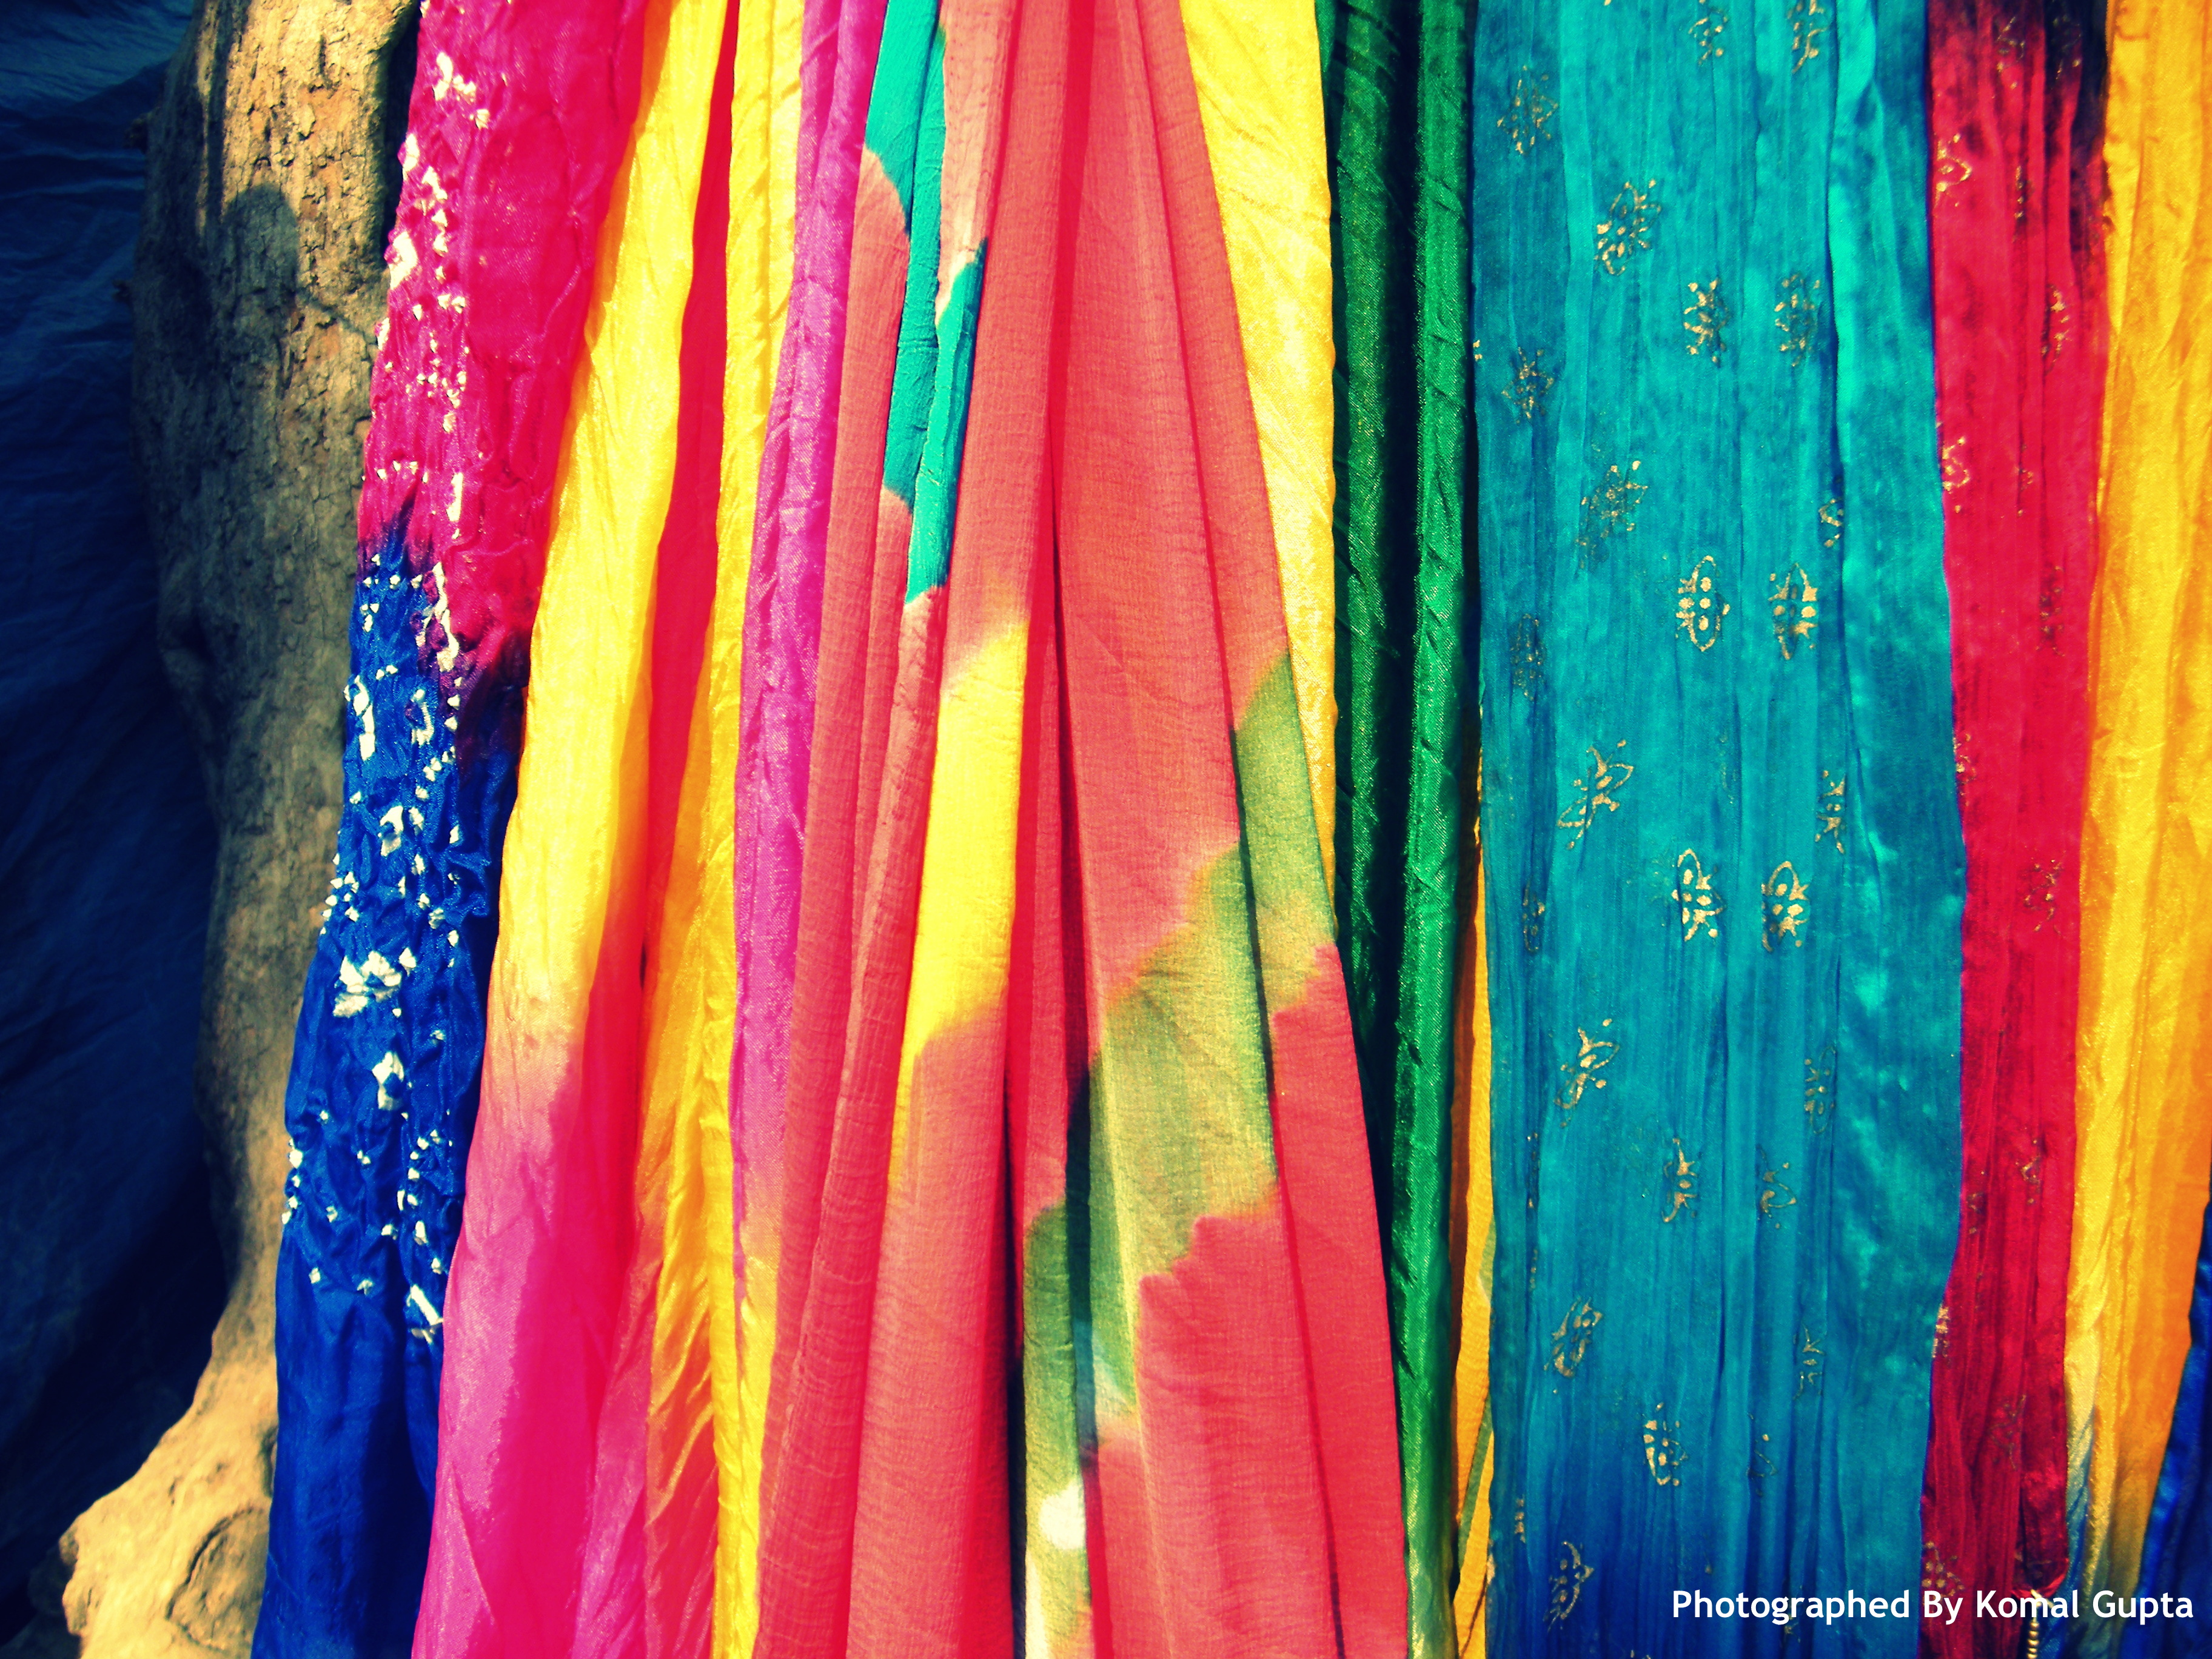 Stopover for Colorful Dupattas